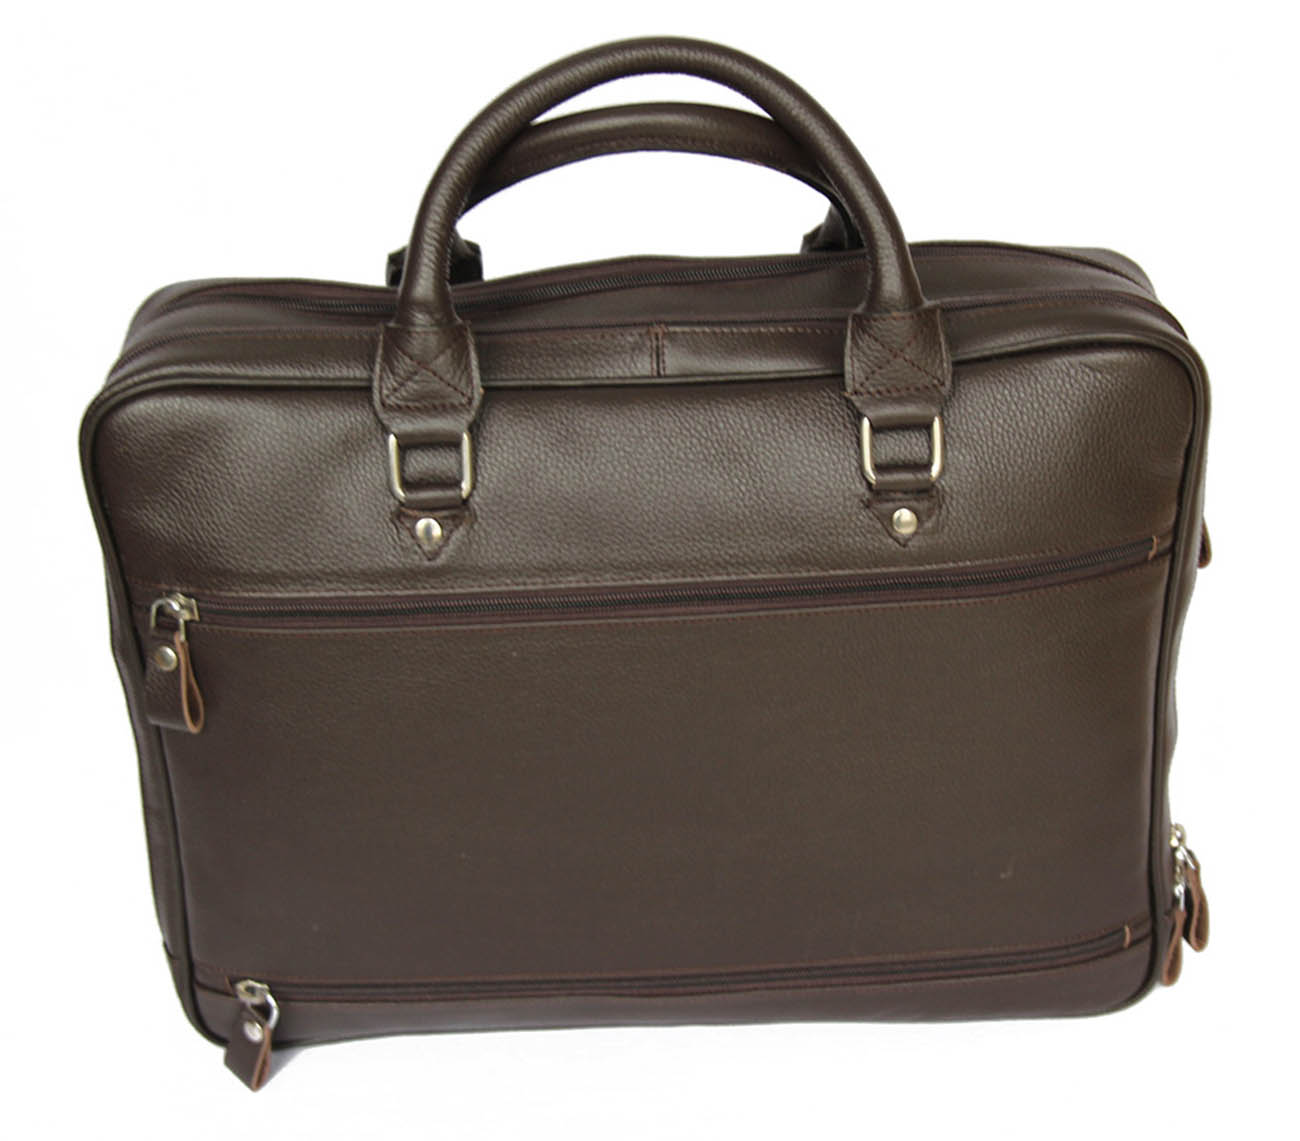 BOSS -Leather Brown  Briefcase MJ -Bag -Satchel -Moroccan Handmad